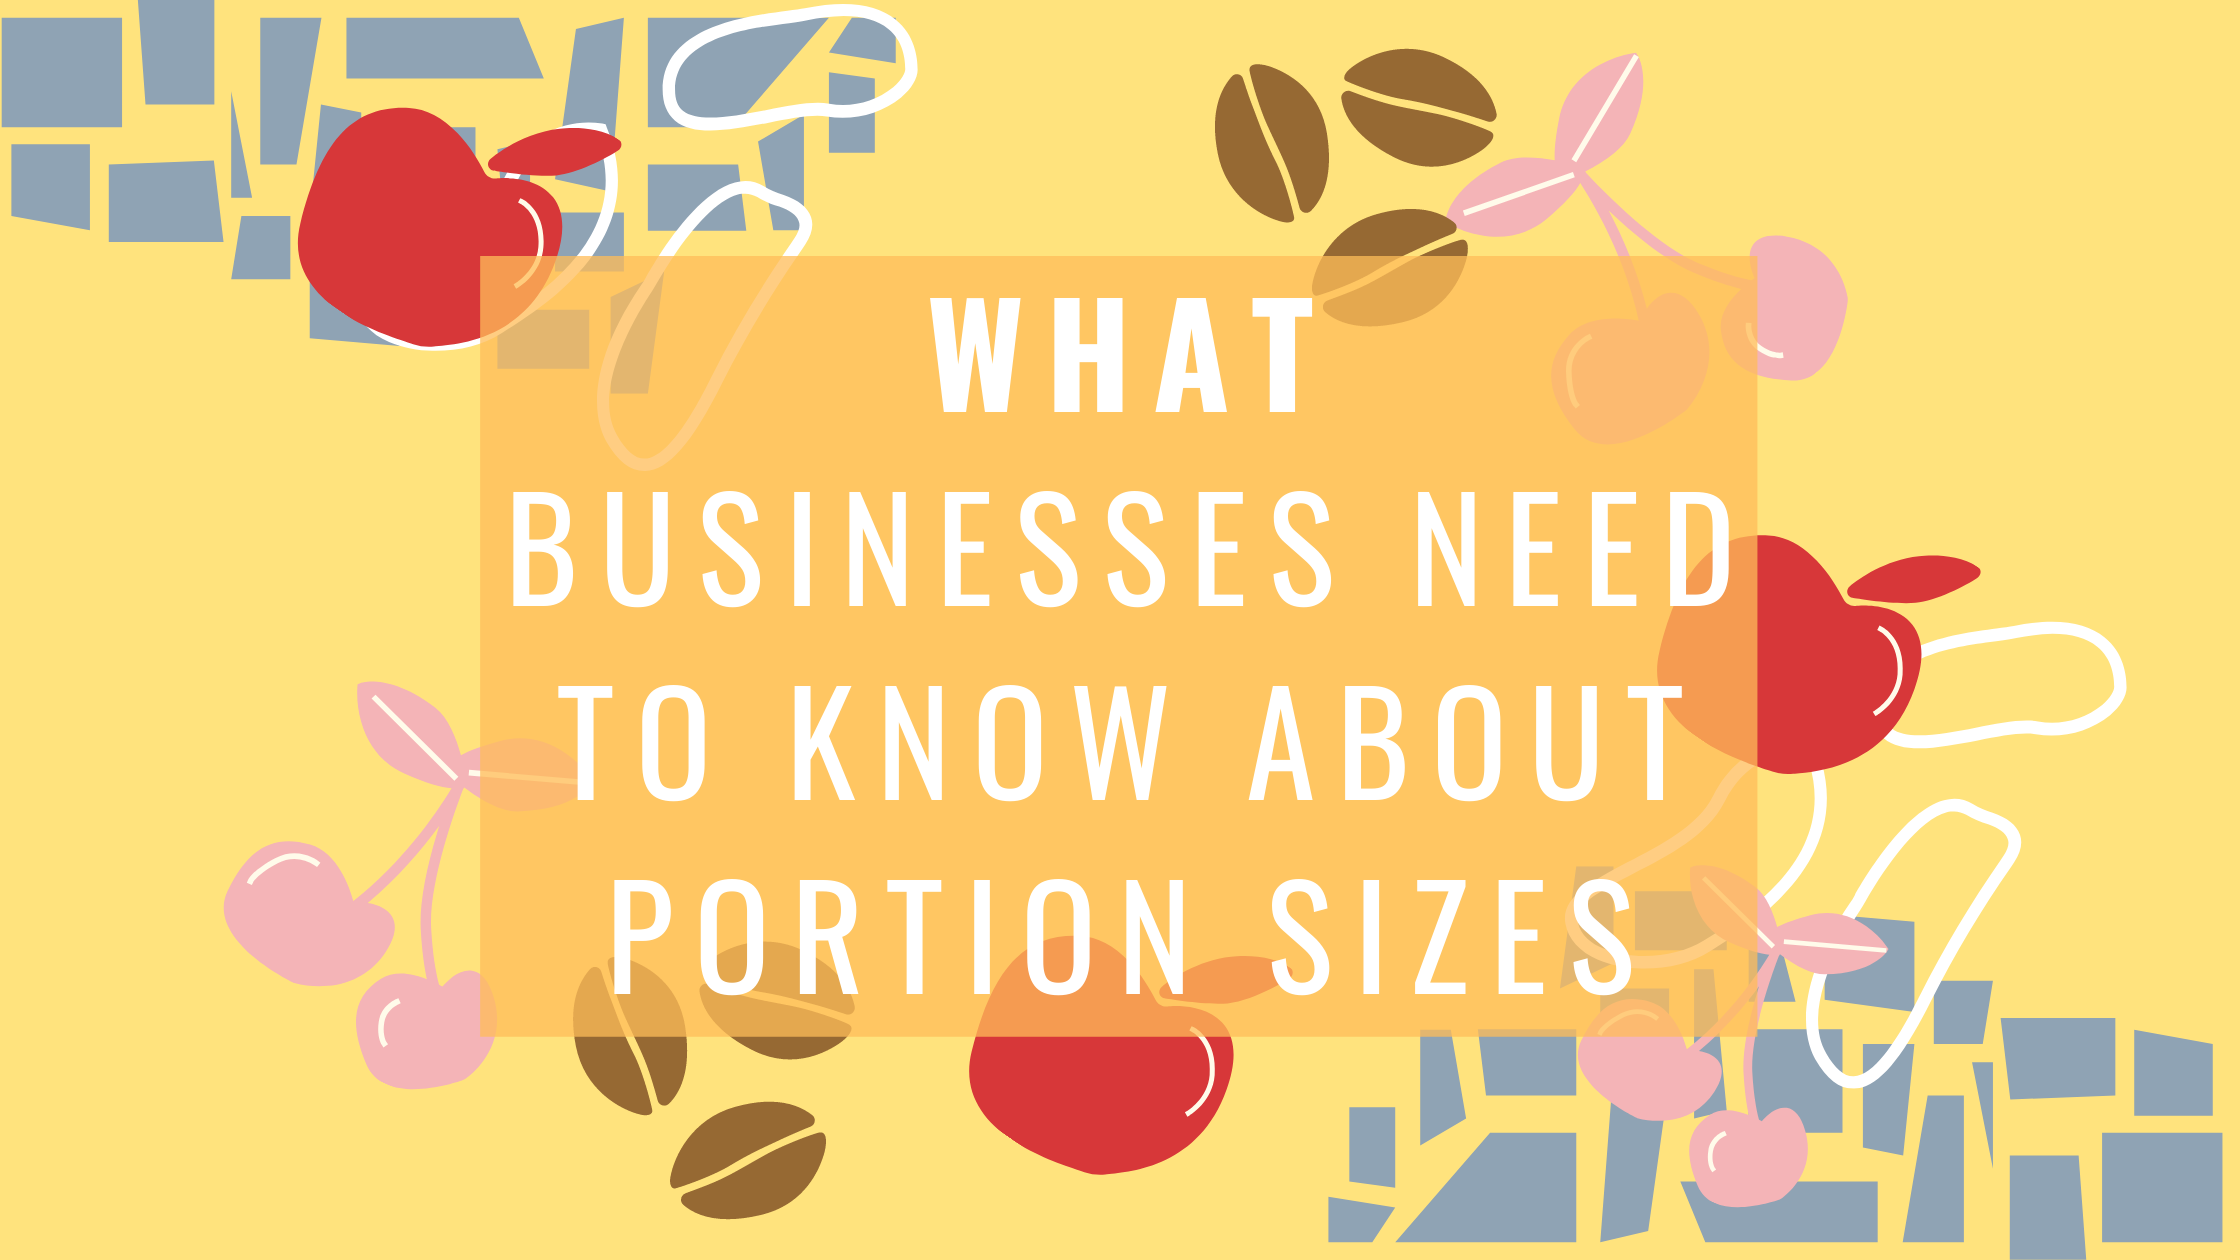 What Businesses Need to Know About Portion Sizes